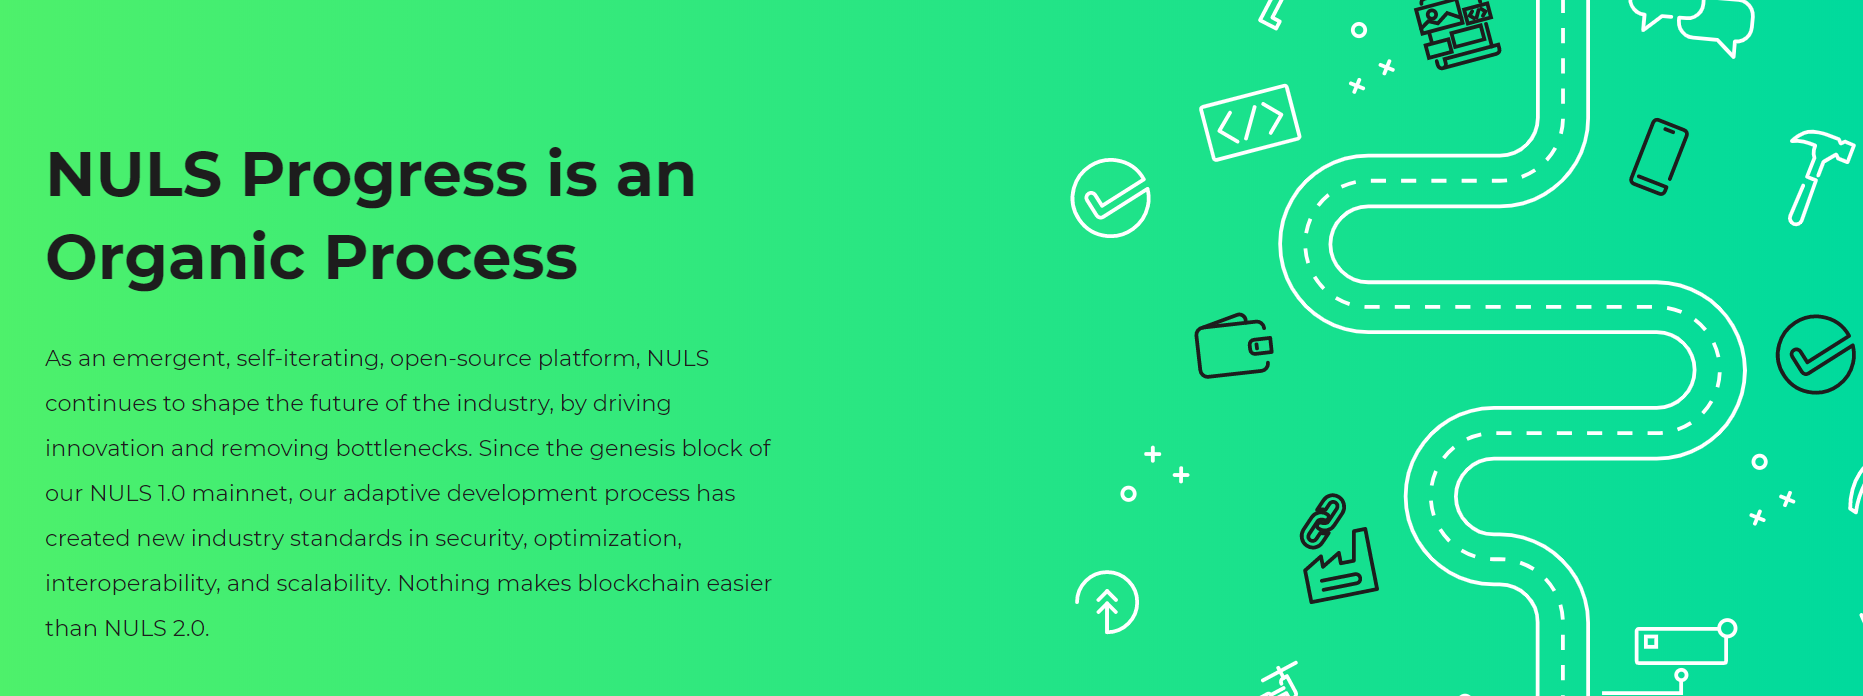 Nuls review